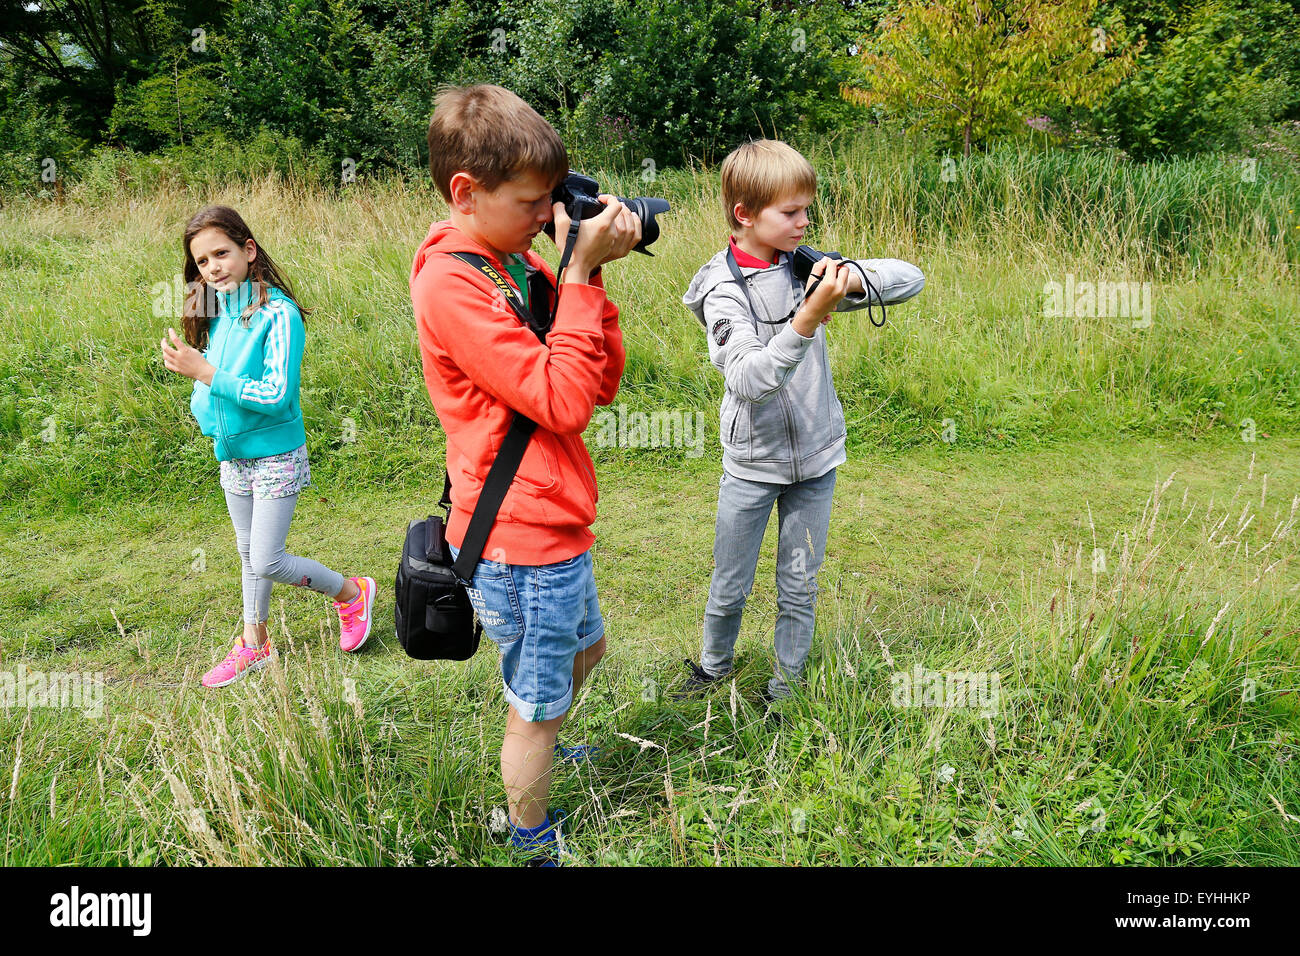 children taking a picture on a grasshopper on boy's arm - Stock Image